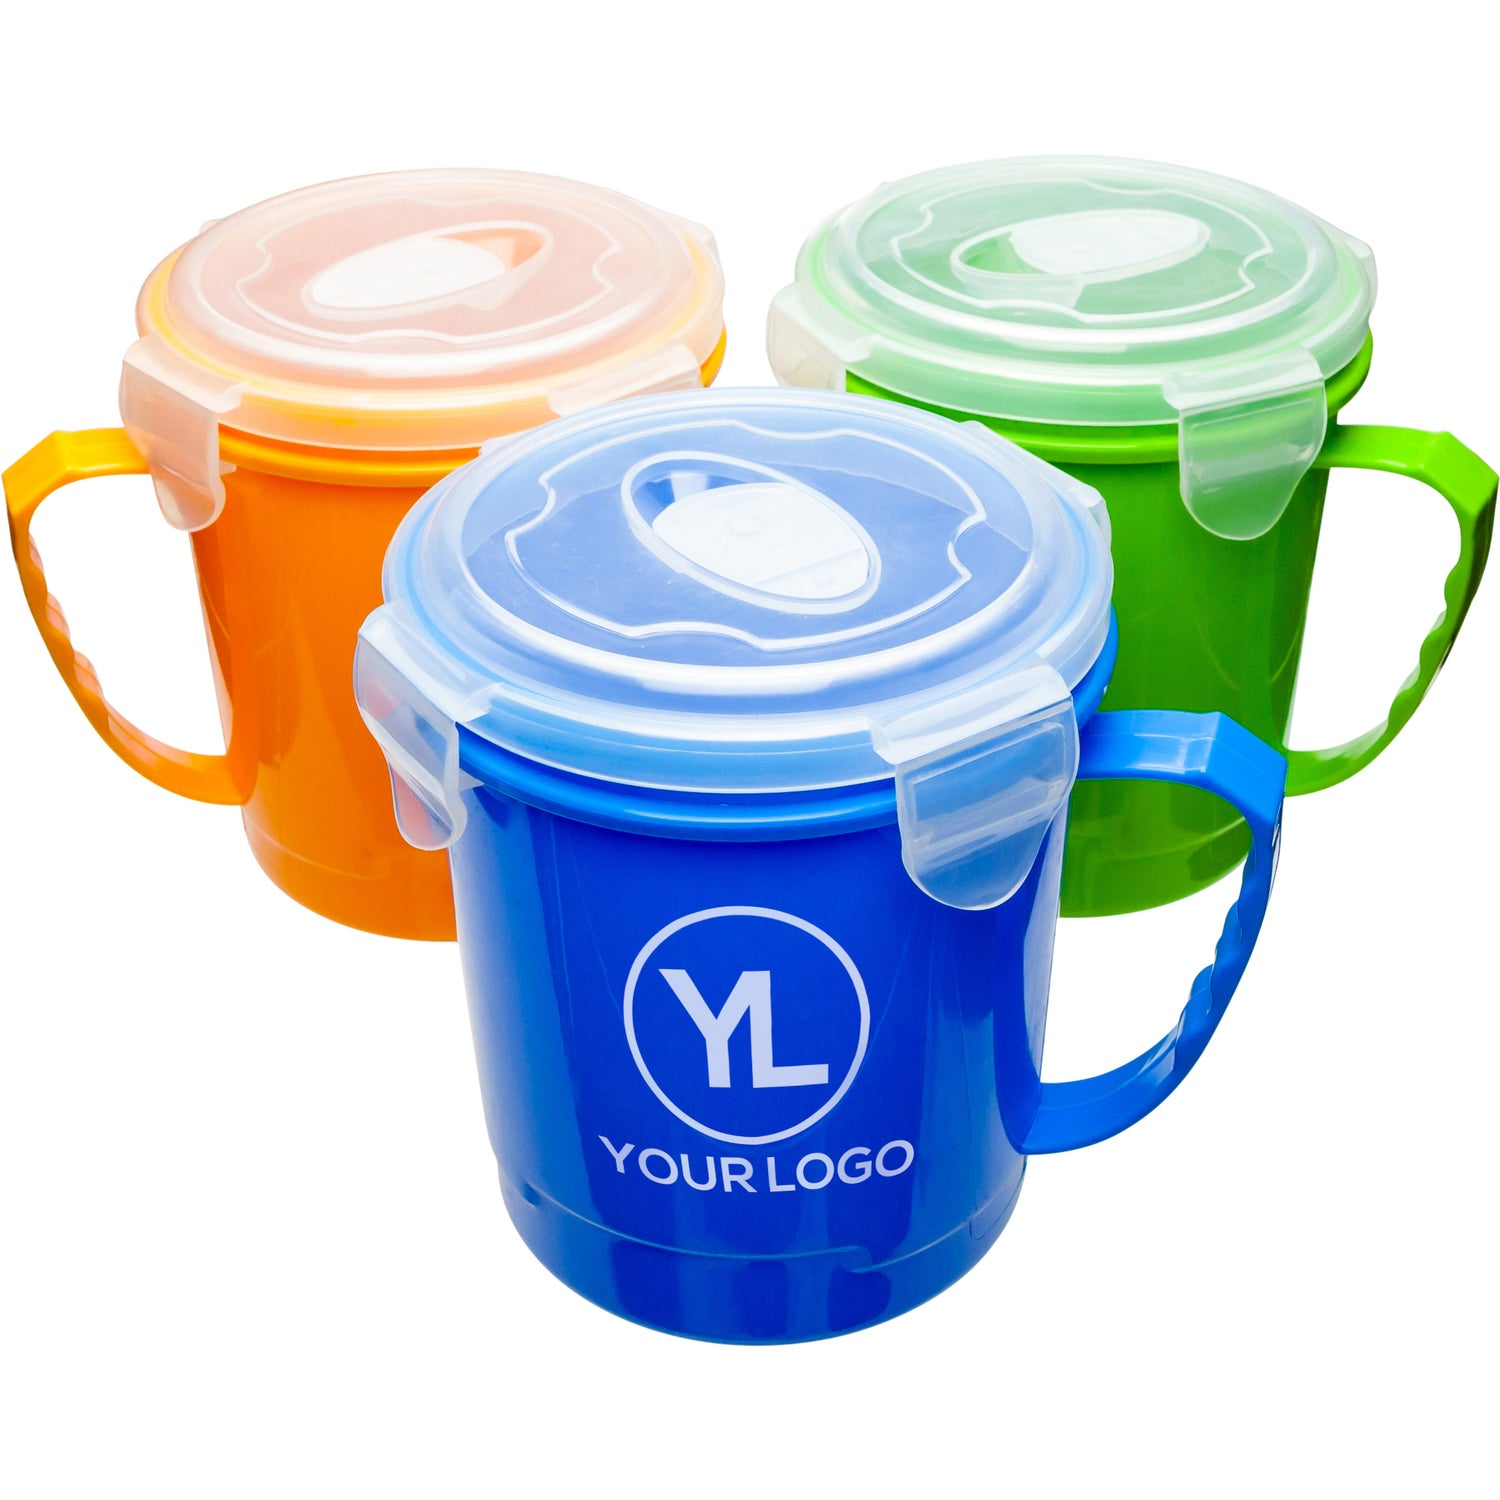 Promotional Soup Mugs with Custom Logo for $1.34 Ea.